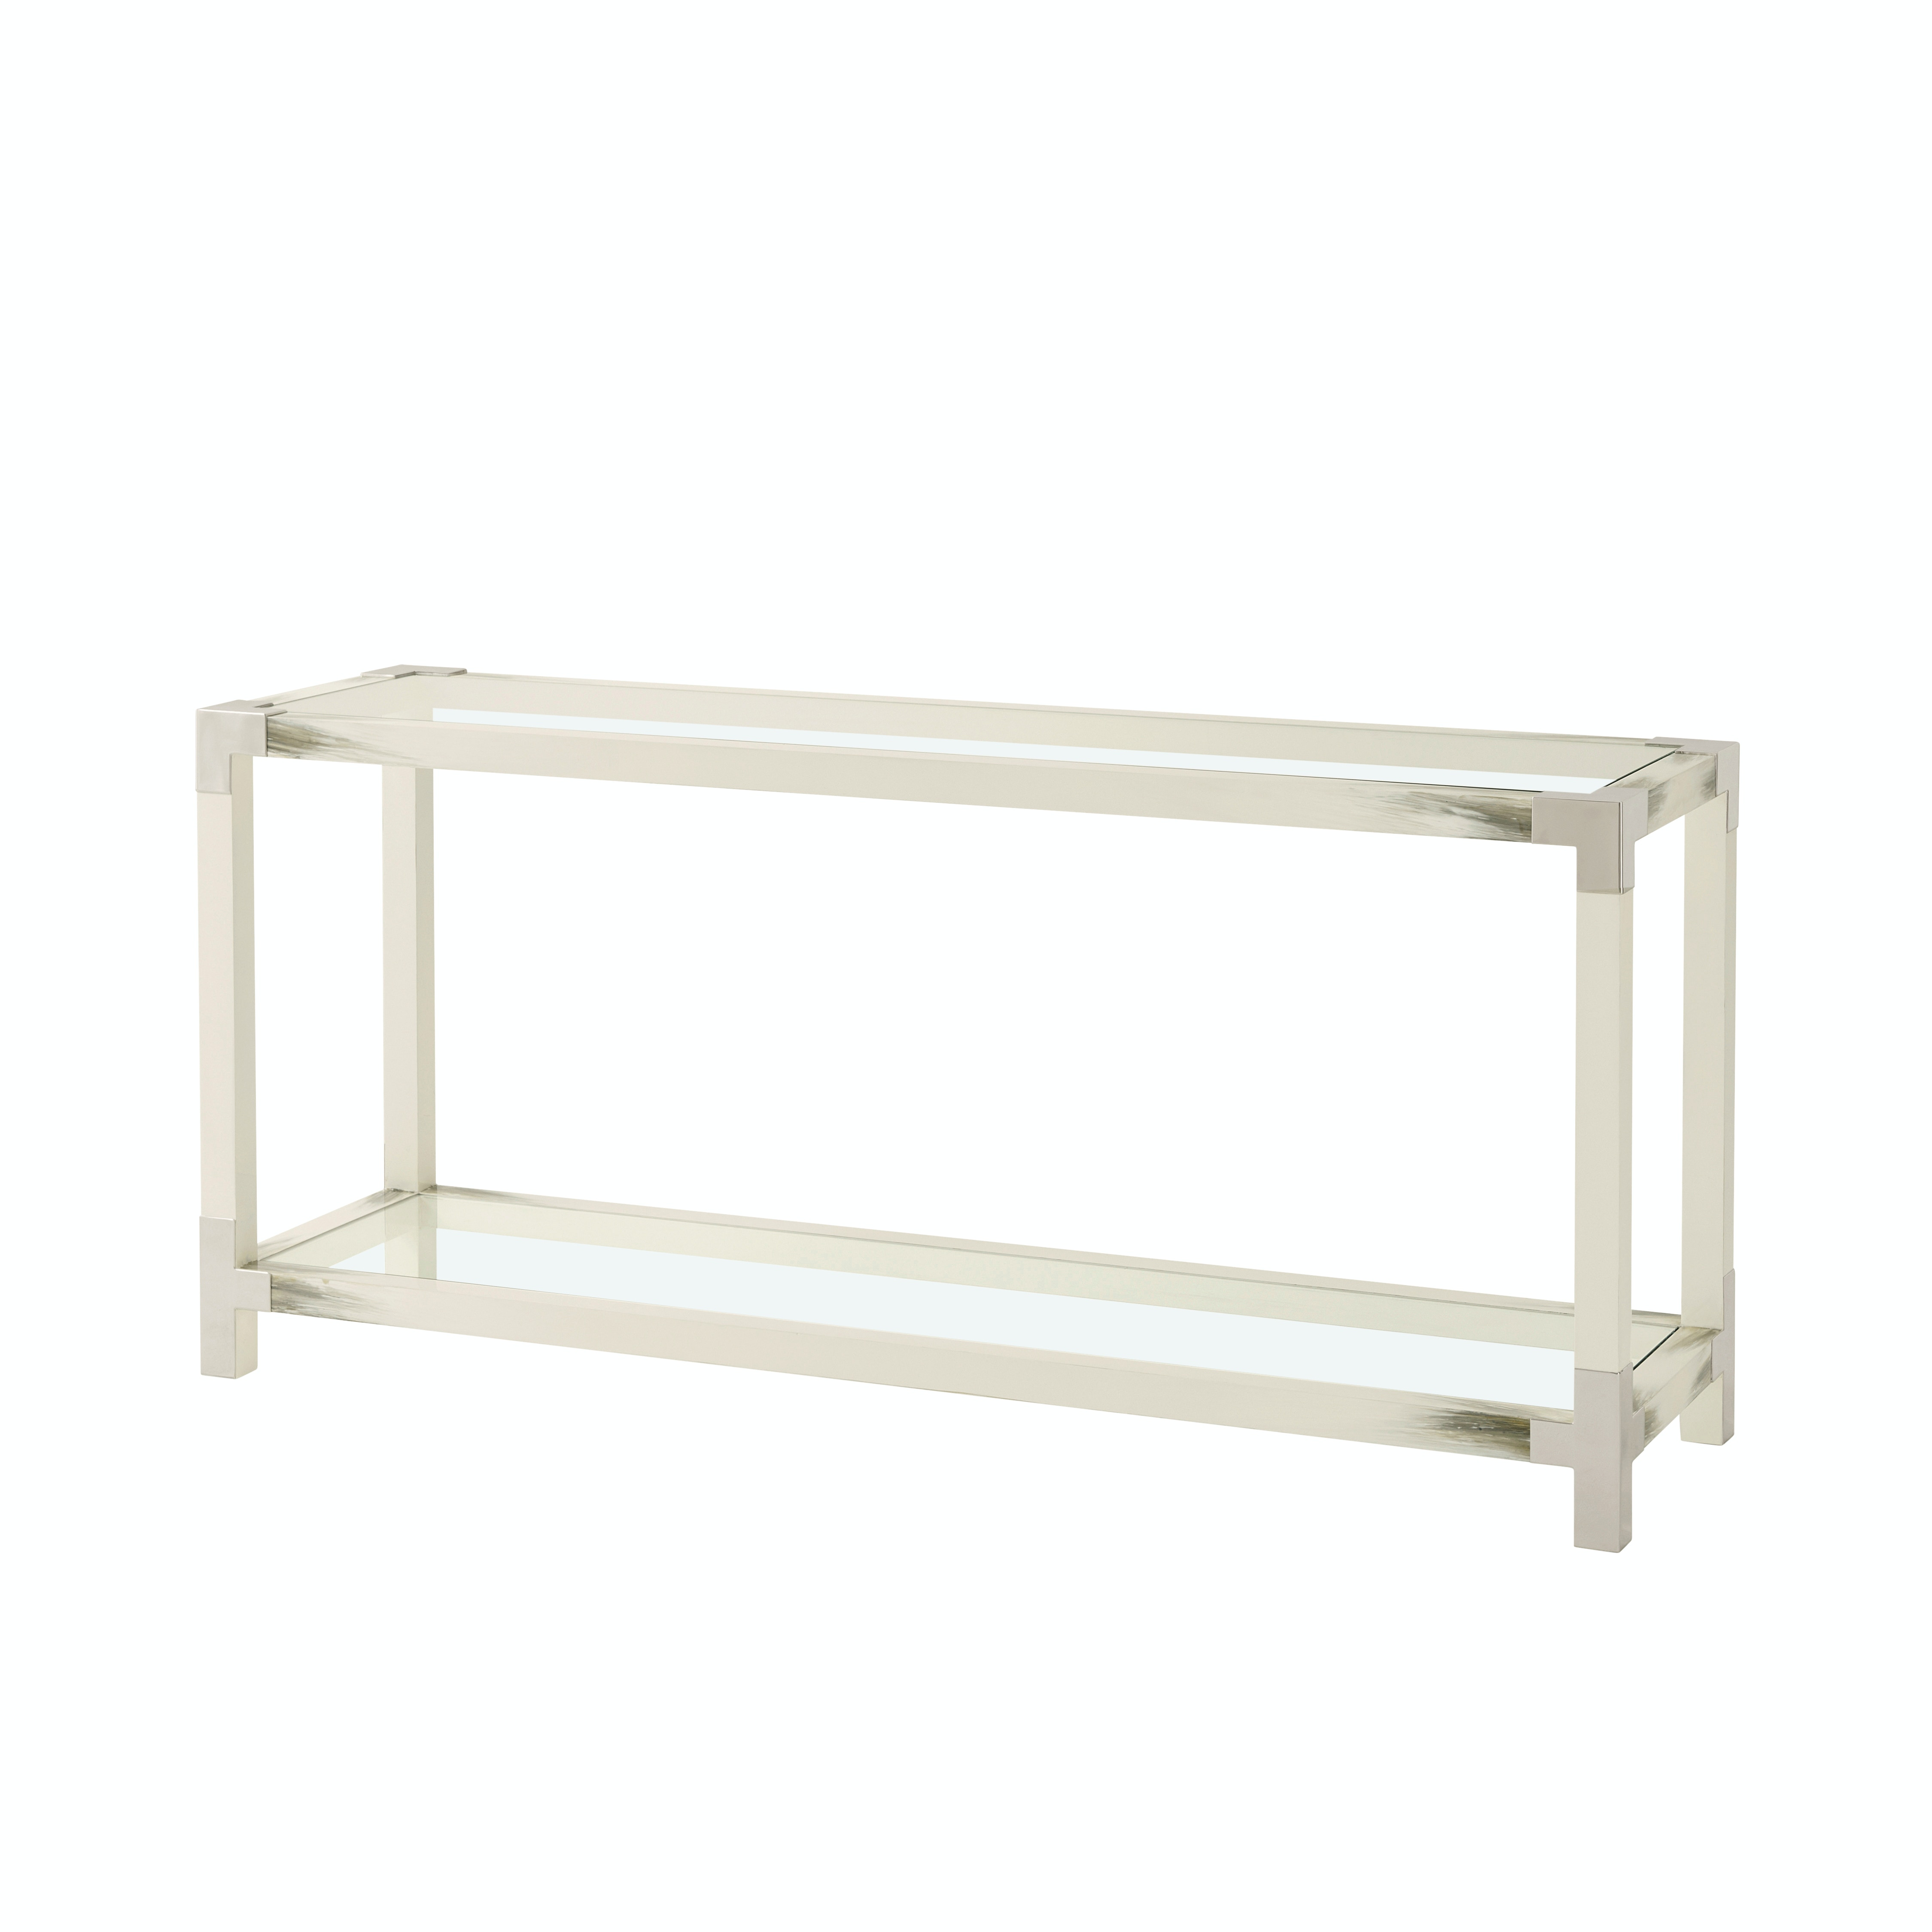 Theodore Alexander Cutting Edge Console (Longhorn White) 5302 117